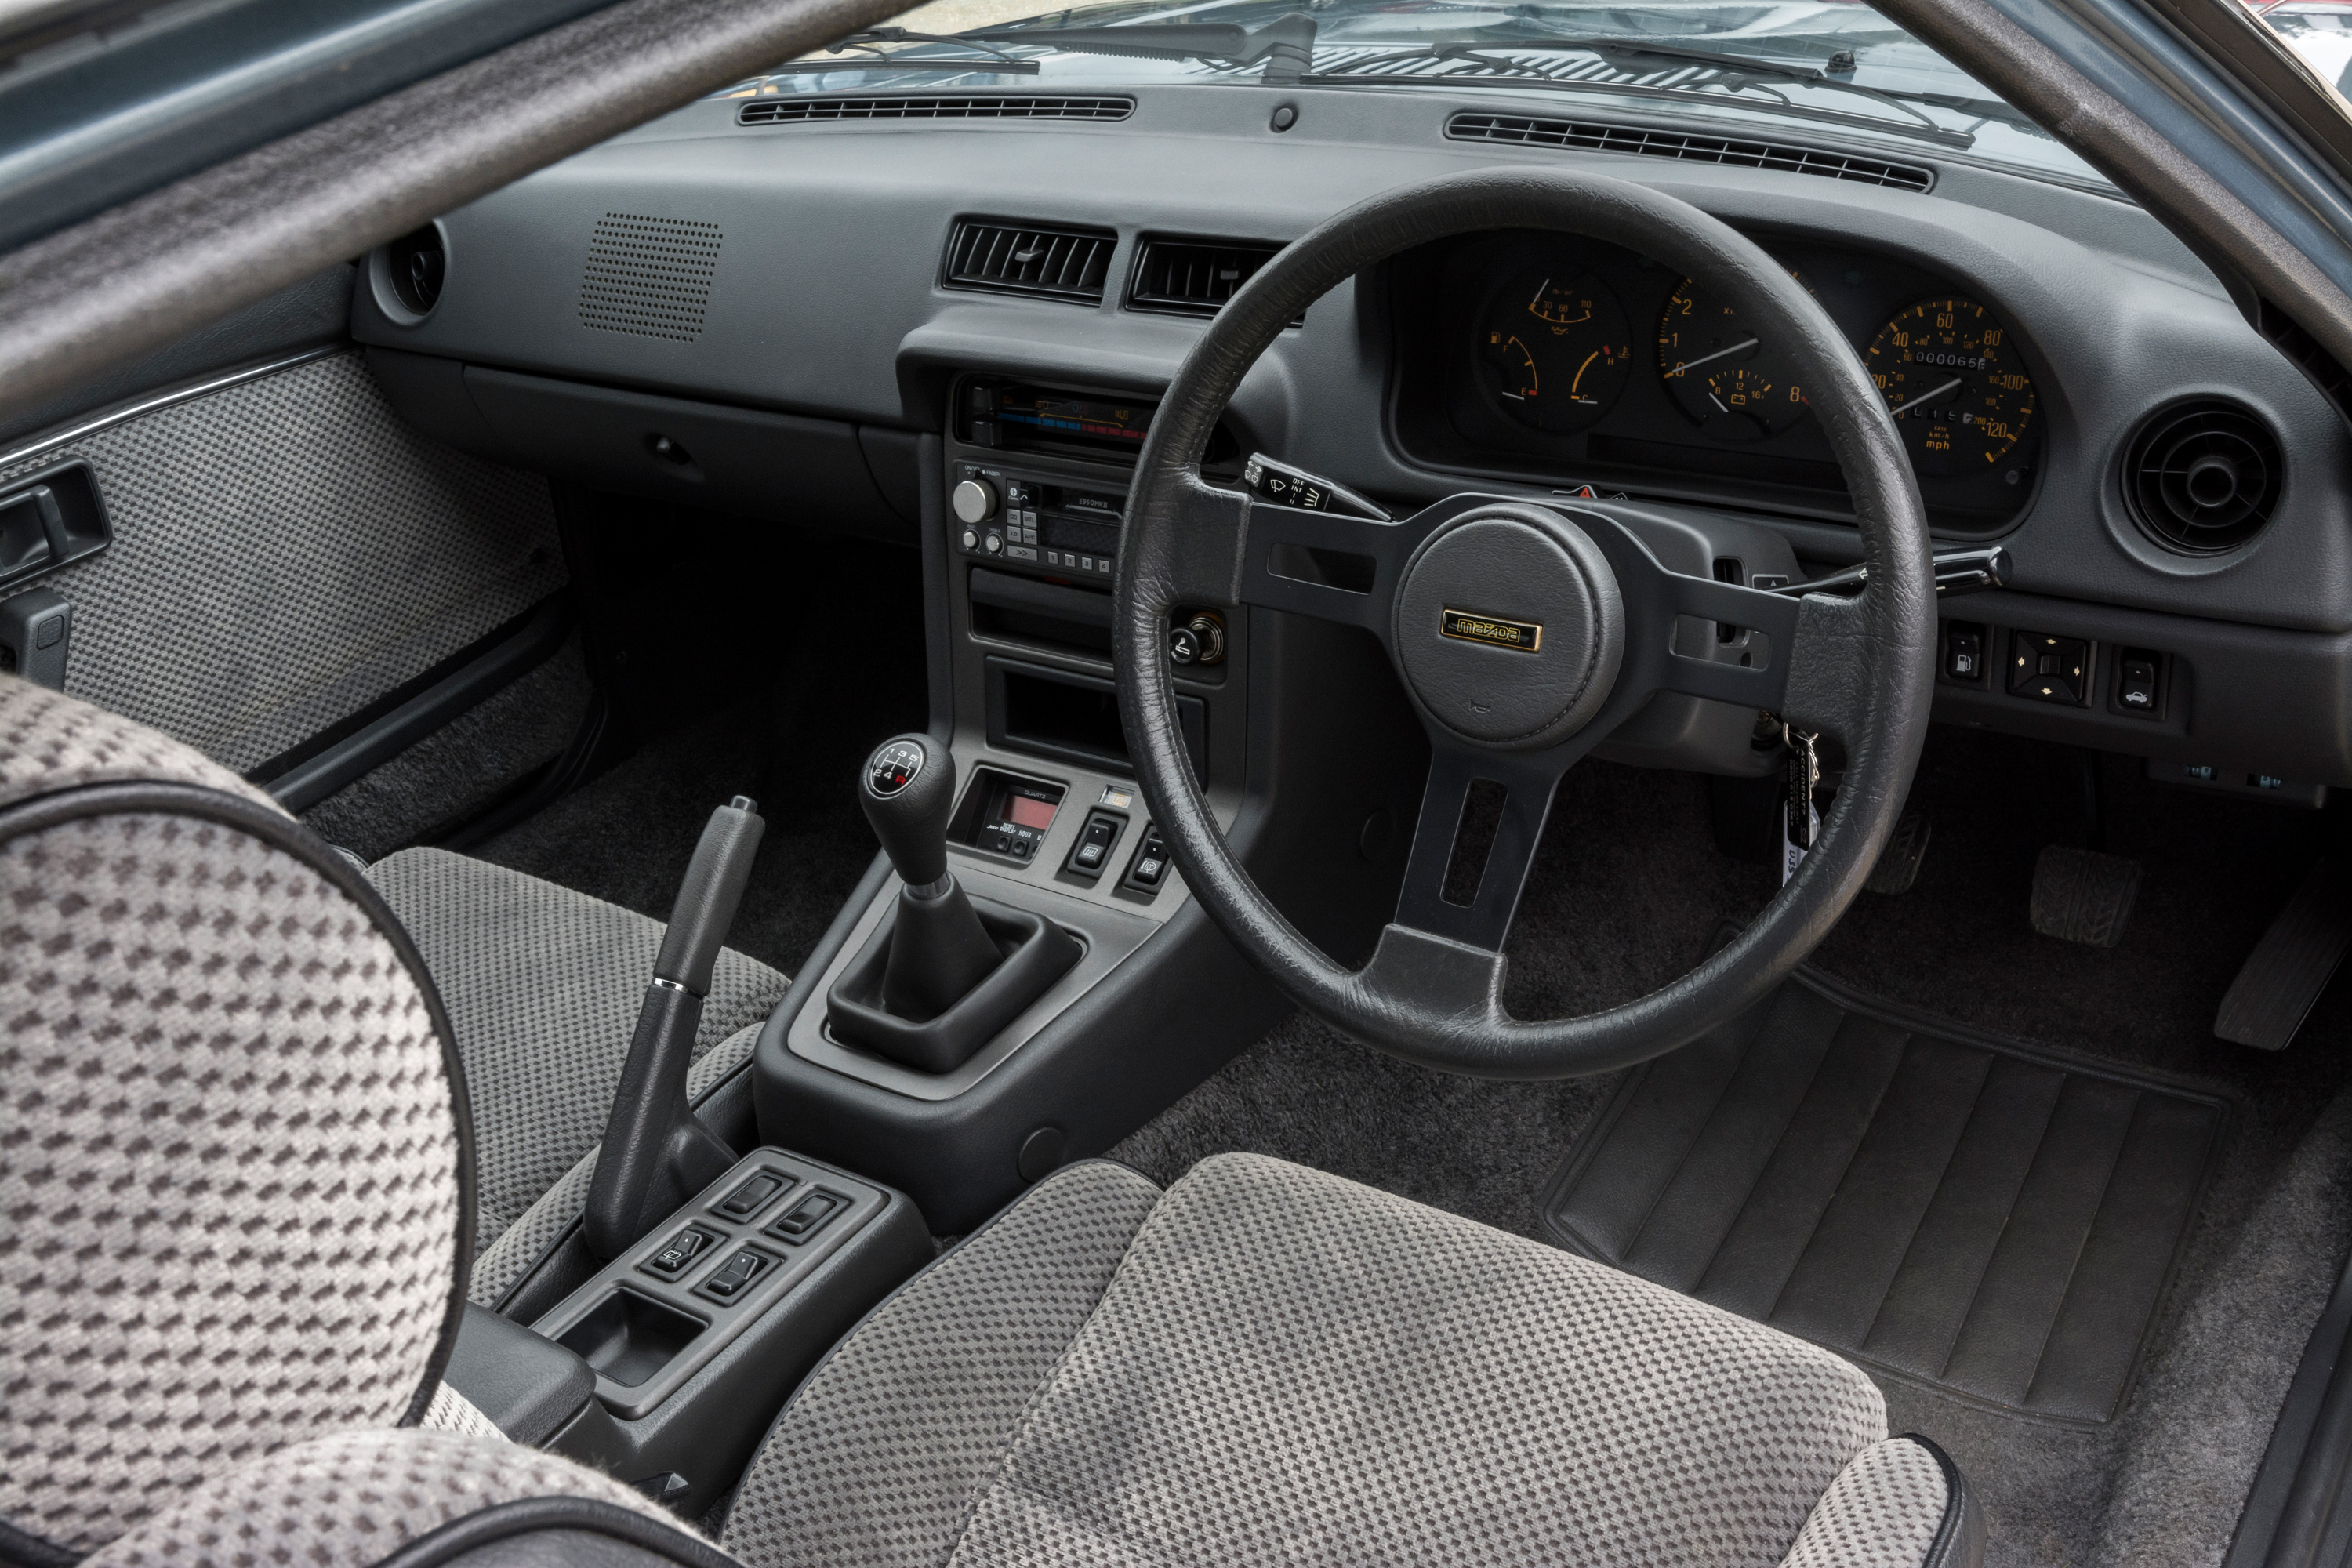 The interior is surprisingly comfortable given the compact size of the car